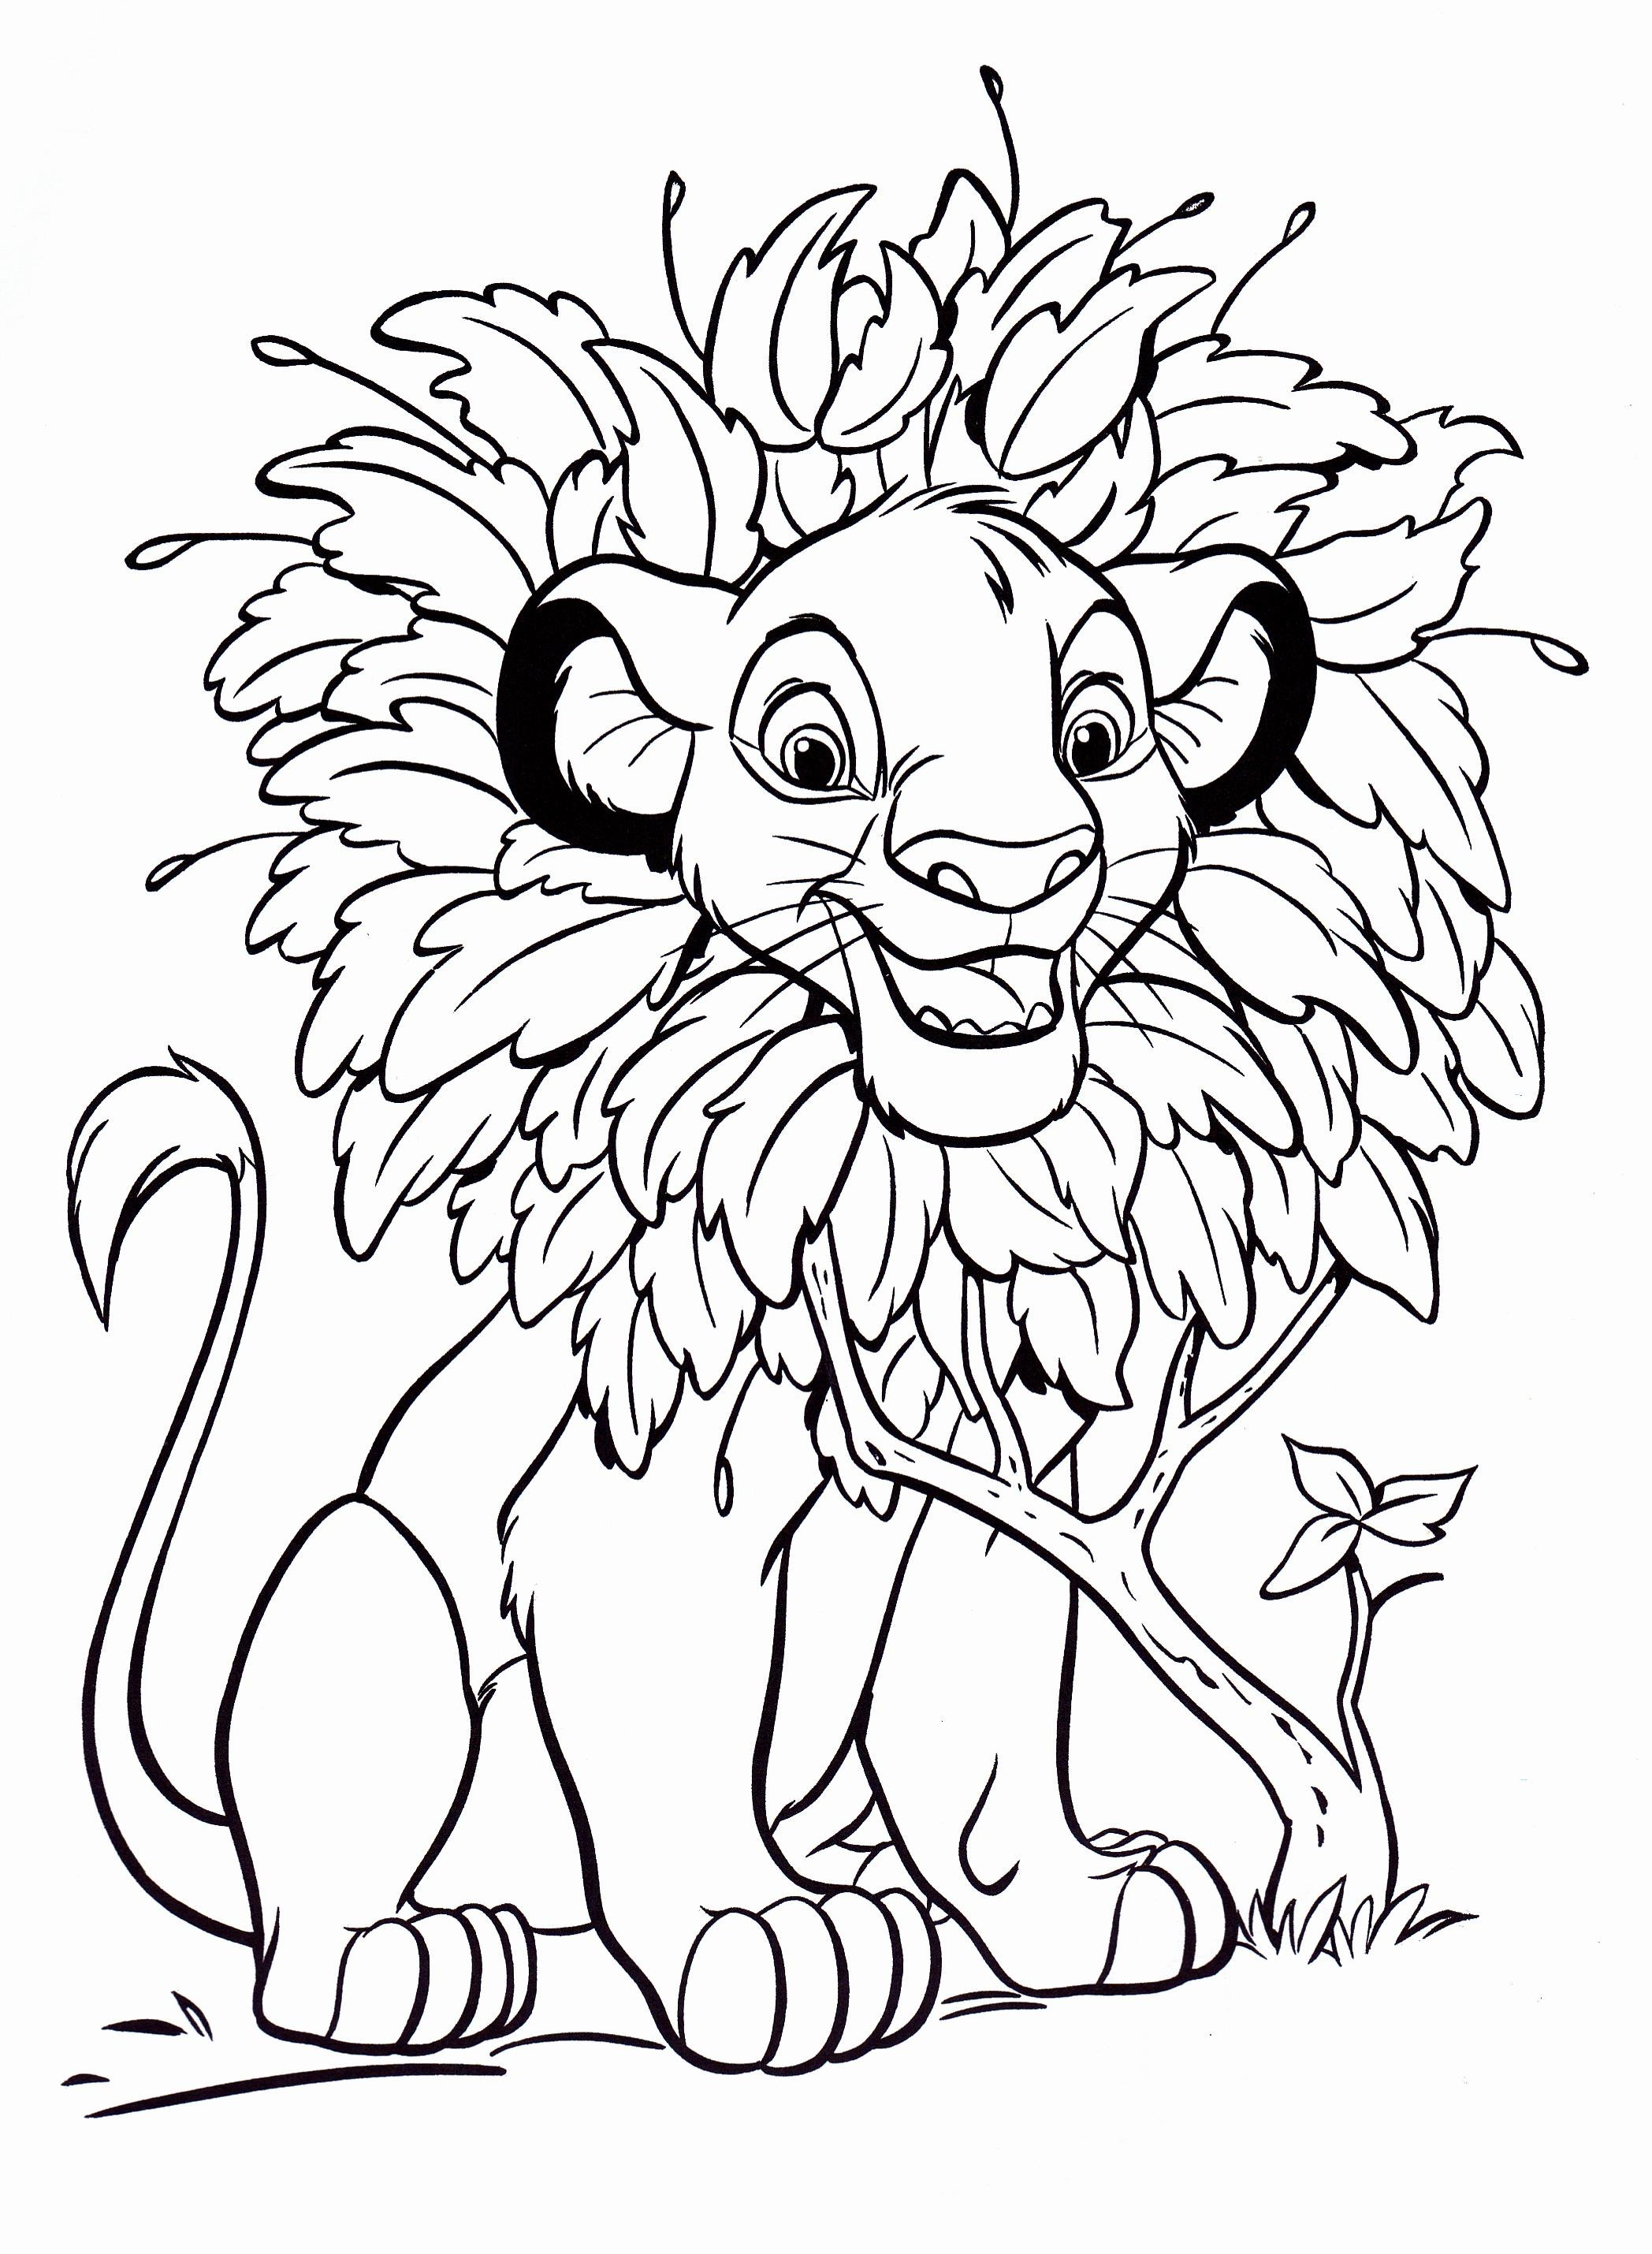 Free Printable Coloring Books For Toddlers  Free Coloring Pages Disney For Kids Image 58 Gianfreda